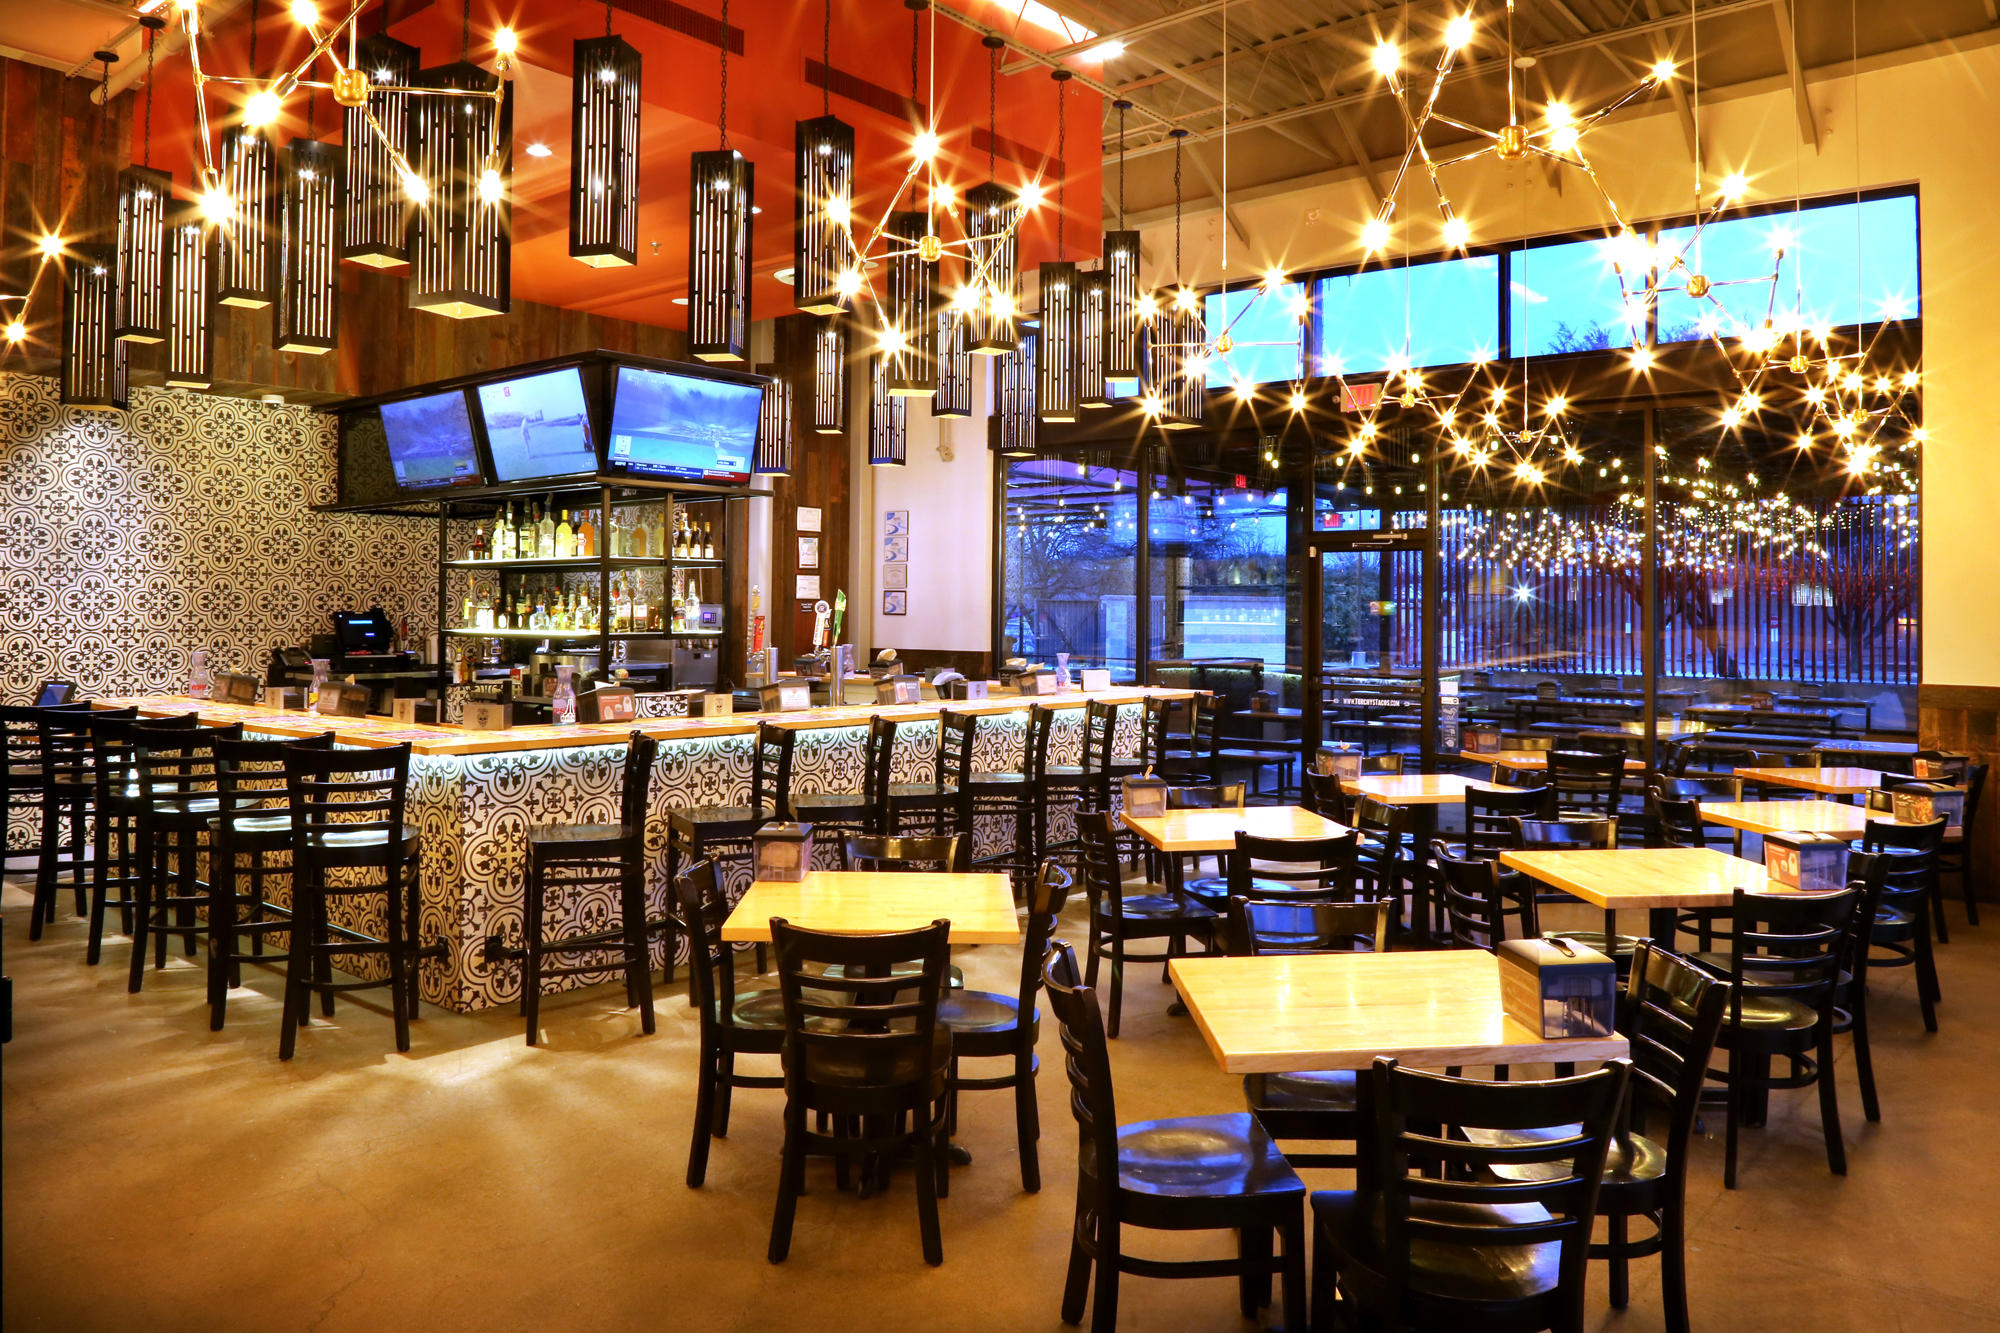 Torchy's Tacos image 1